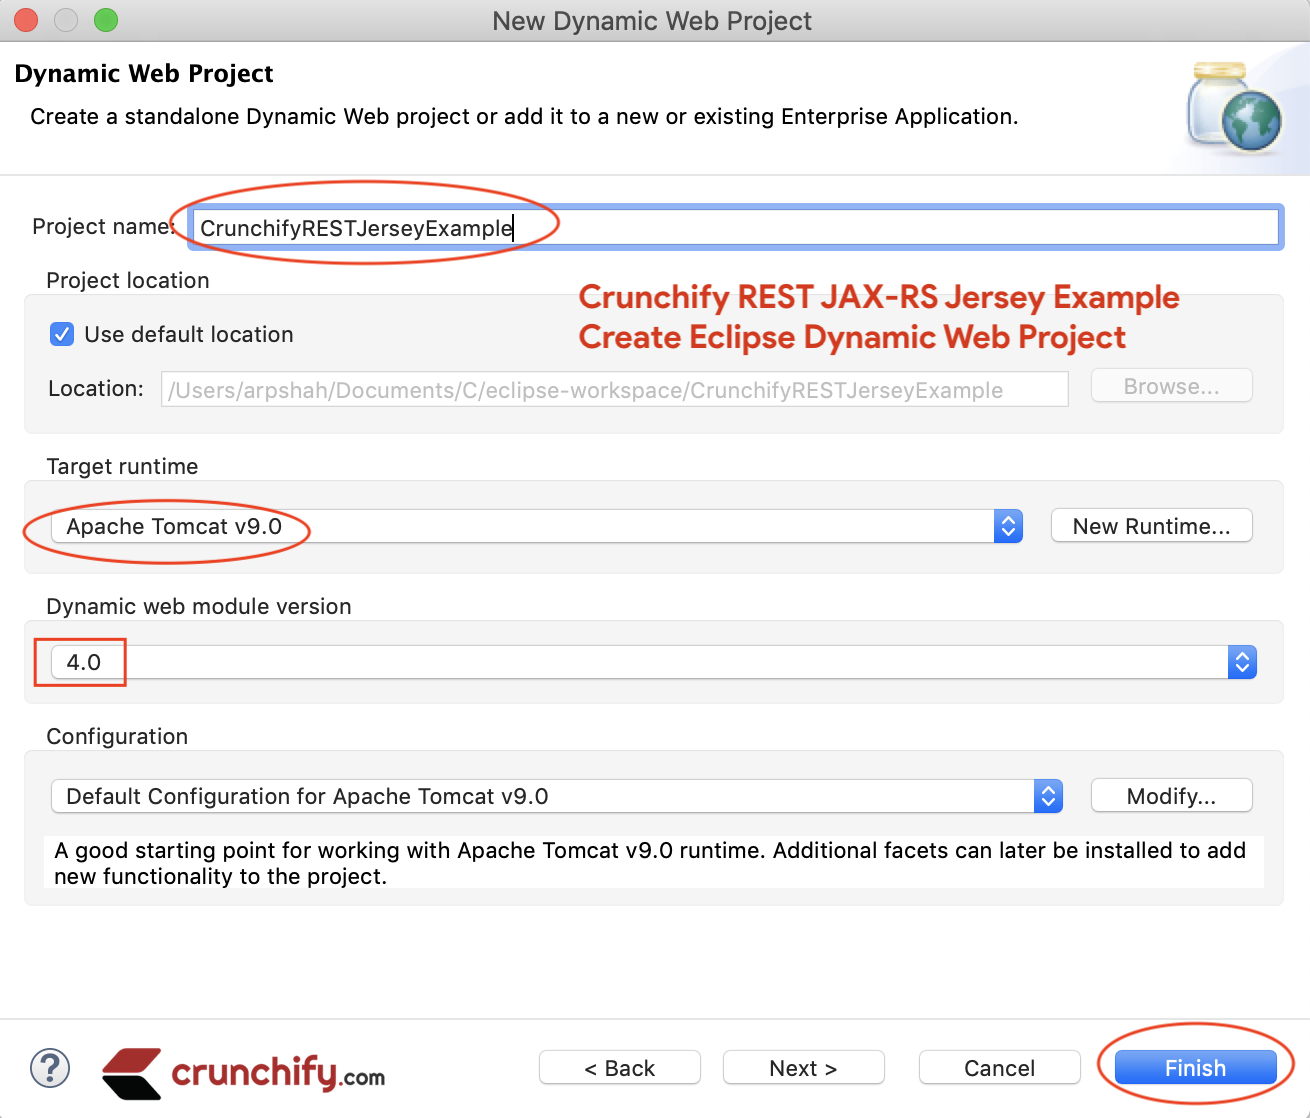 Create Crunchify Eclipse Dynamic Web Project